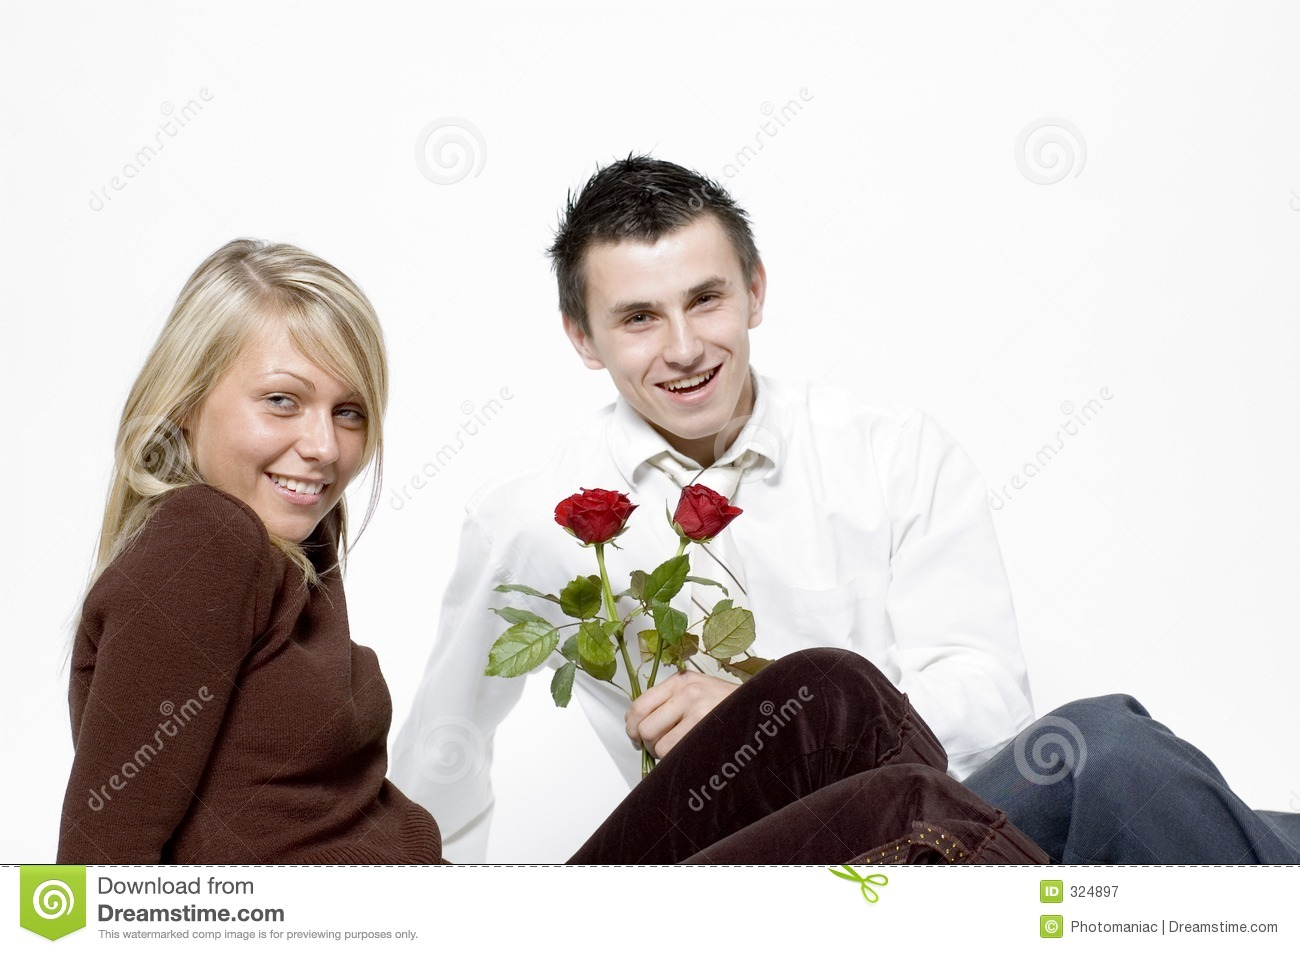 Boy and girl / roses